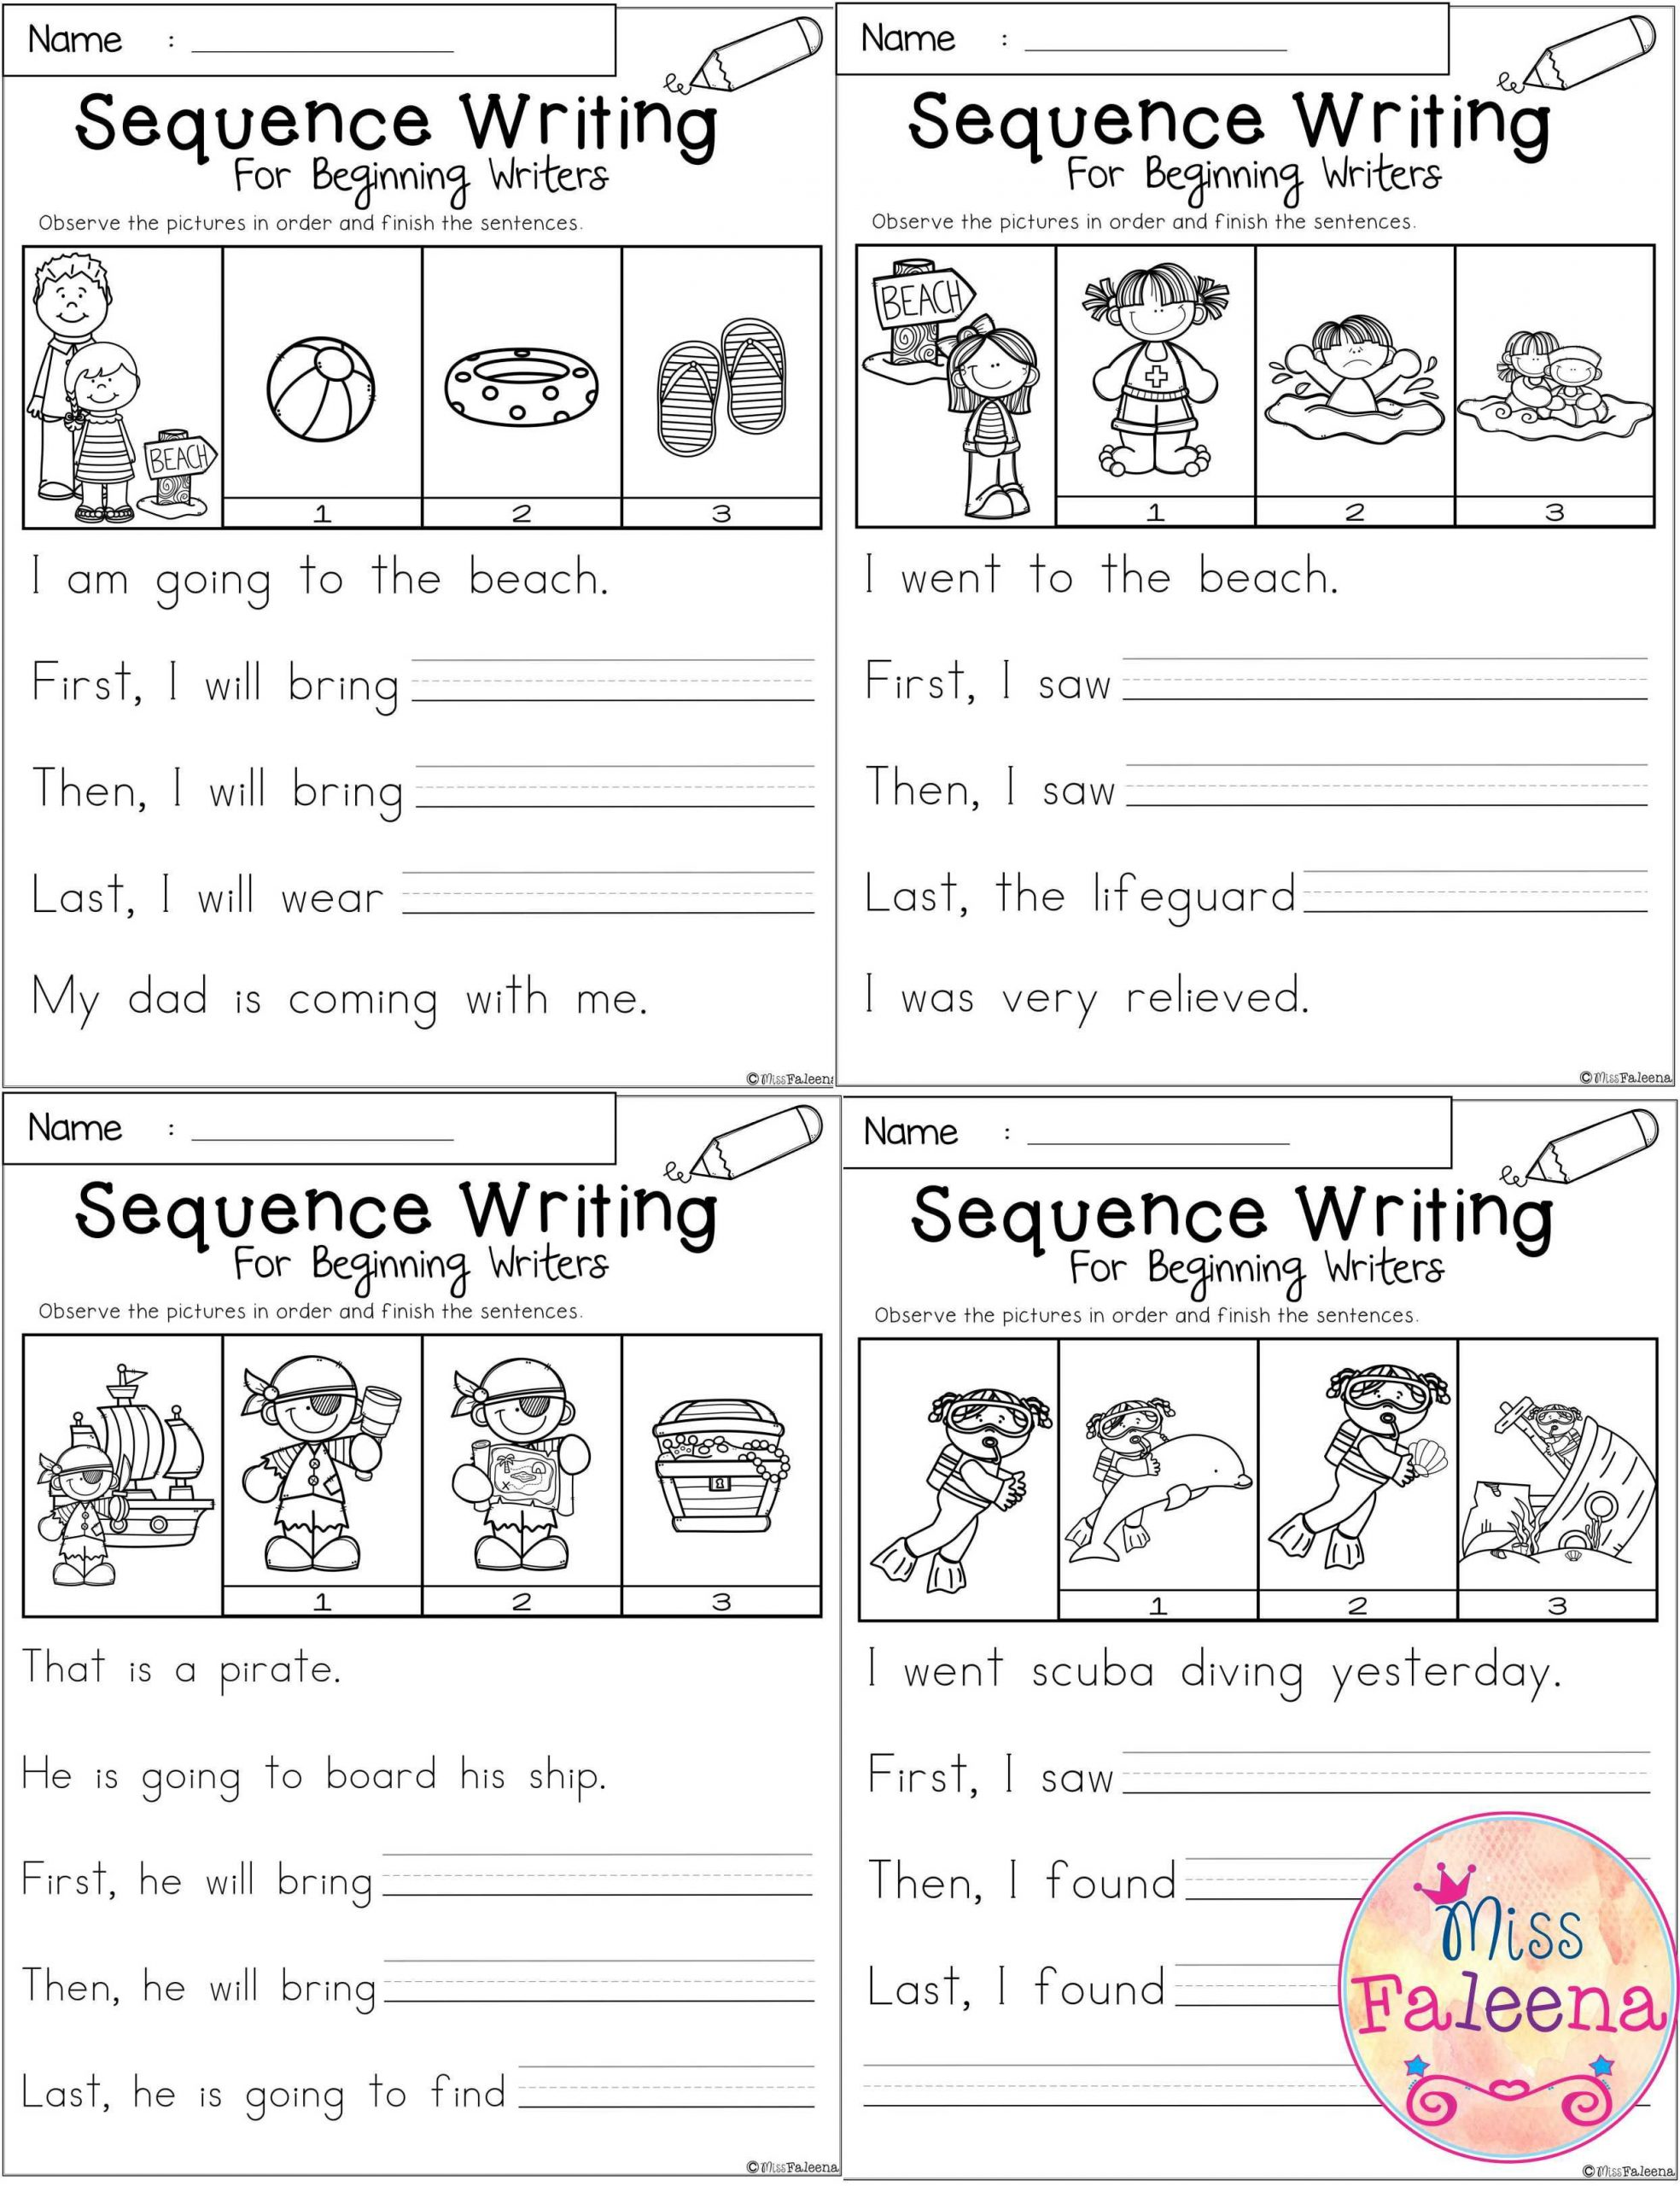 Sequence Worksheets for 1st Grade August Sequence Writing for Beginning Writers